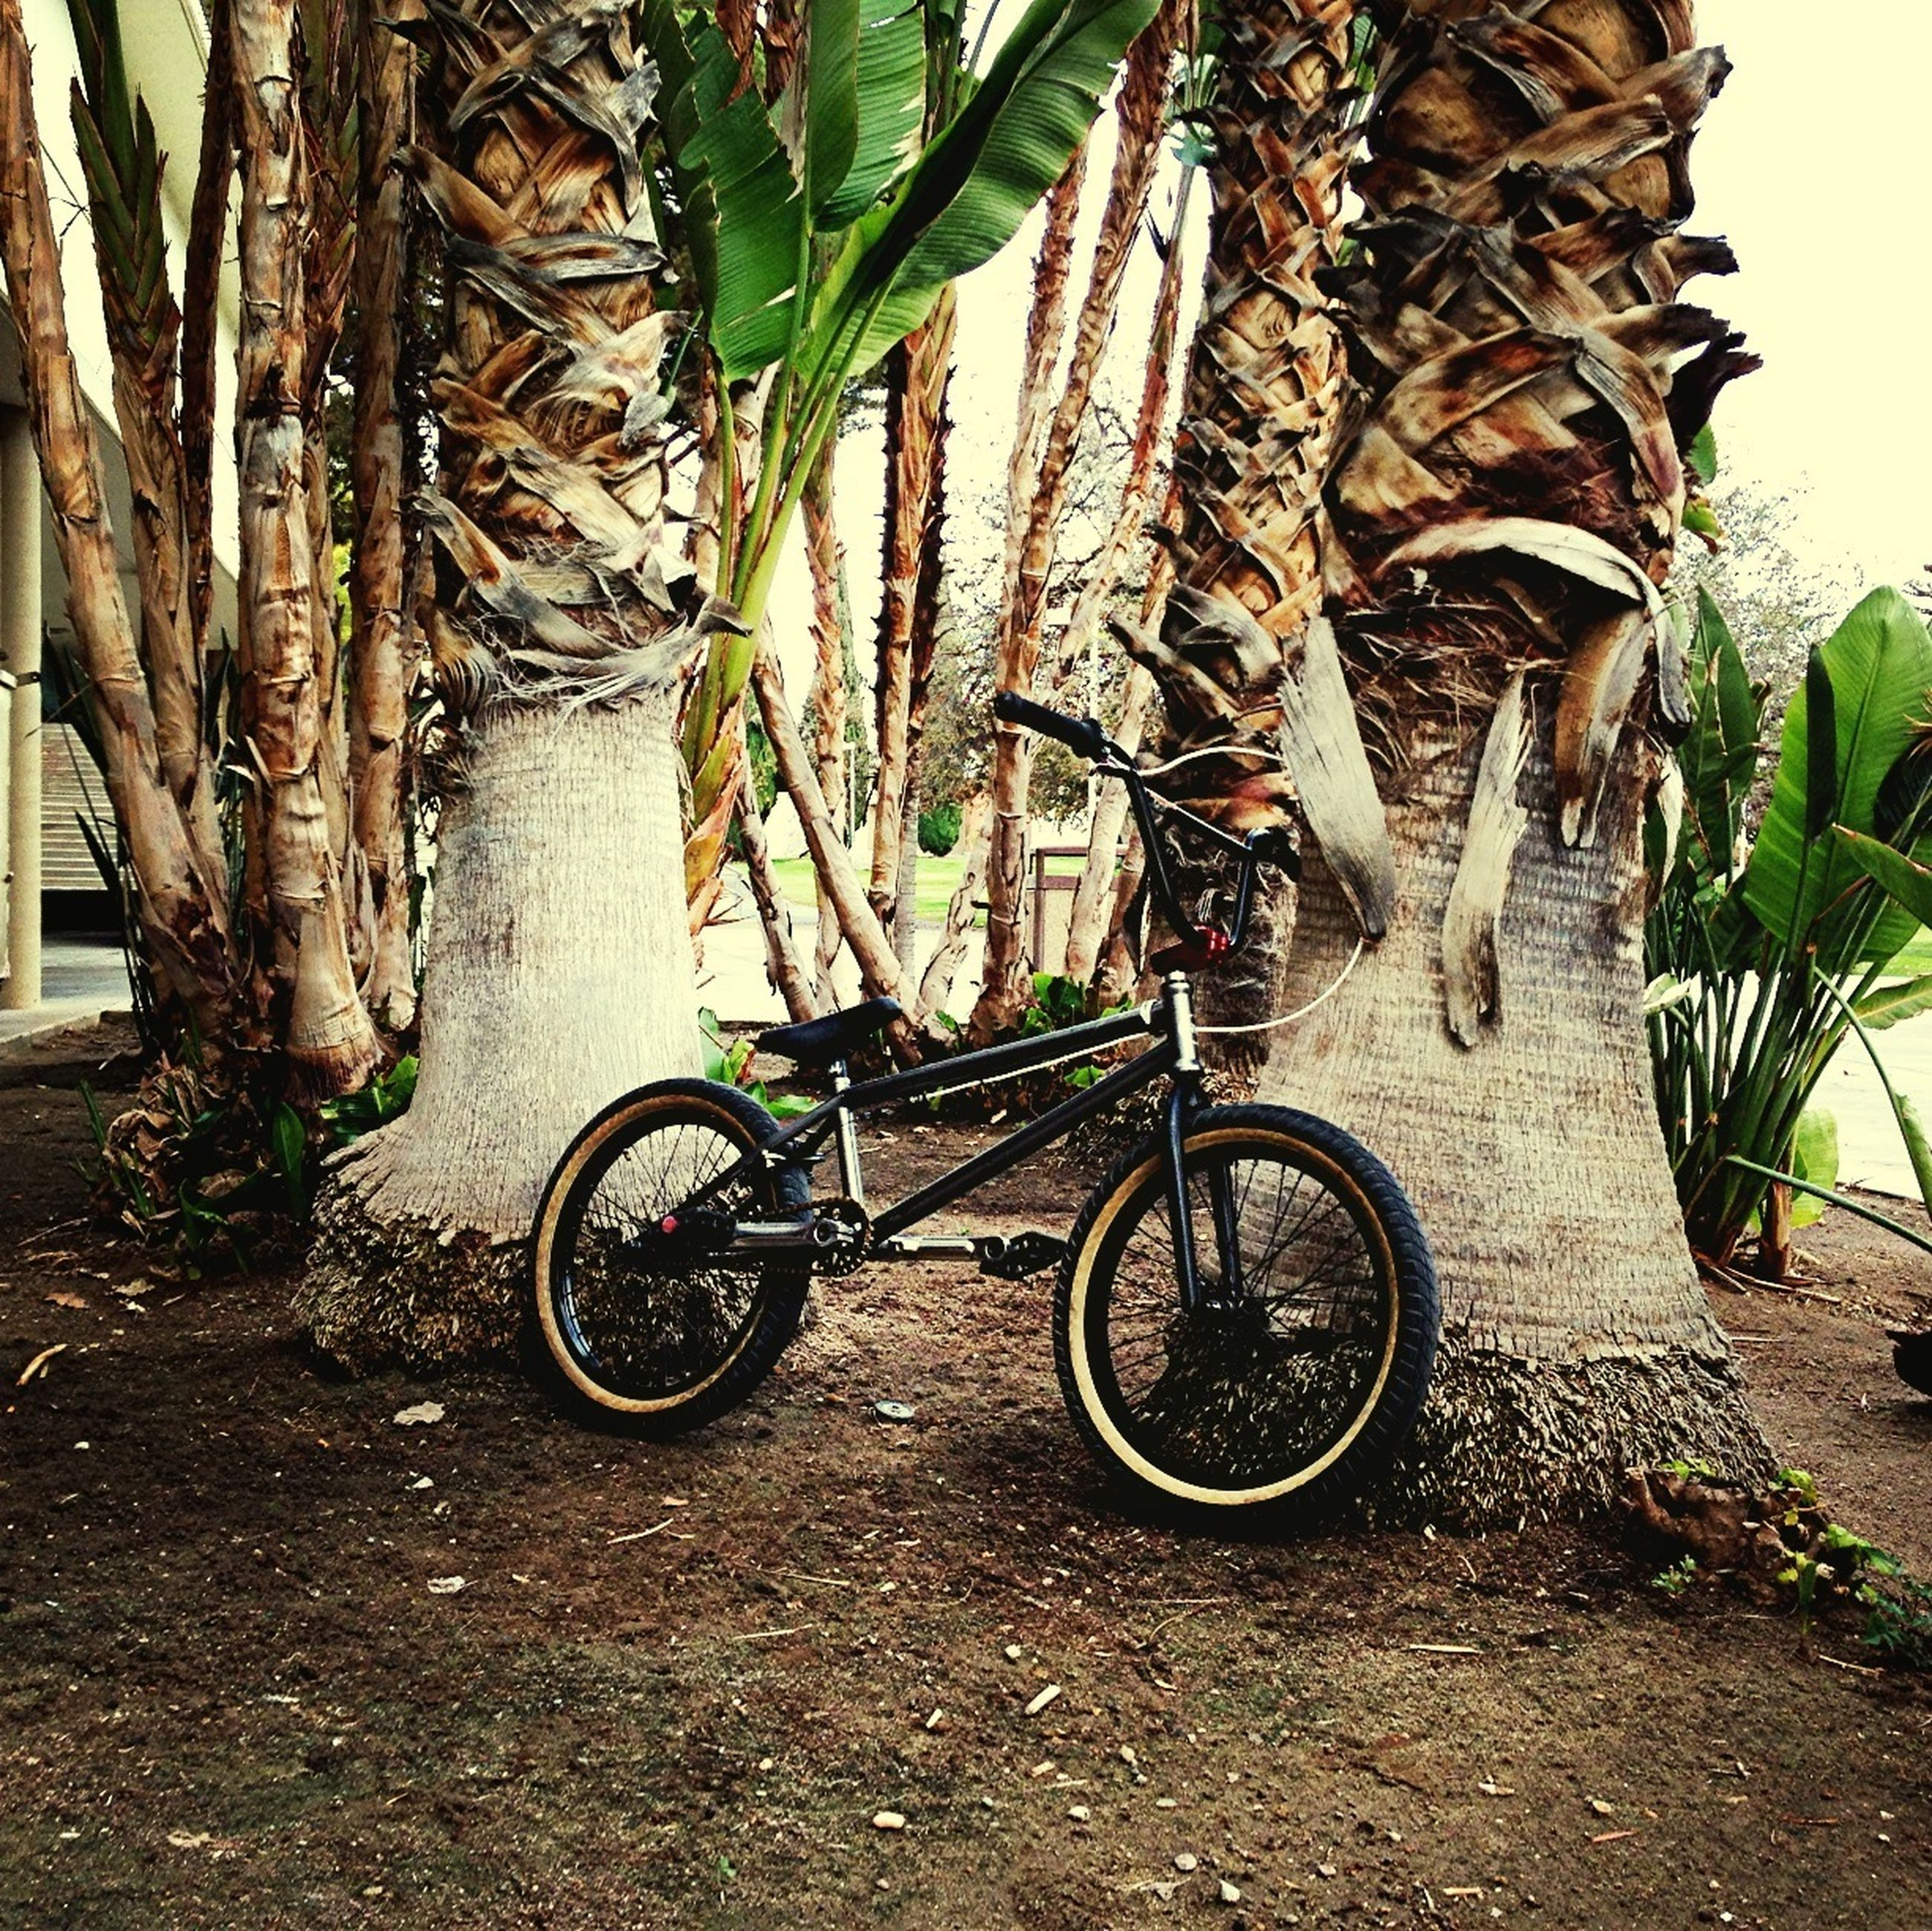 bicycle, land vehicle, transportation, mode of transport, stationary, parking, parked, plant, wheel, growth, tree, sunlight, no people, outdoors, day, shadow, street, absence, wall - building feature, potted plant